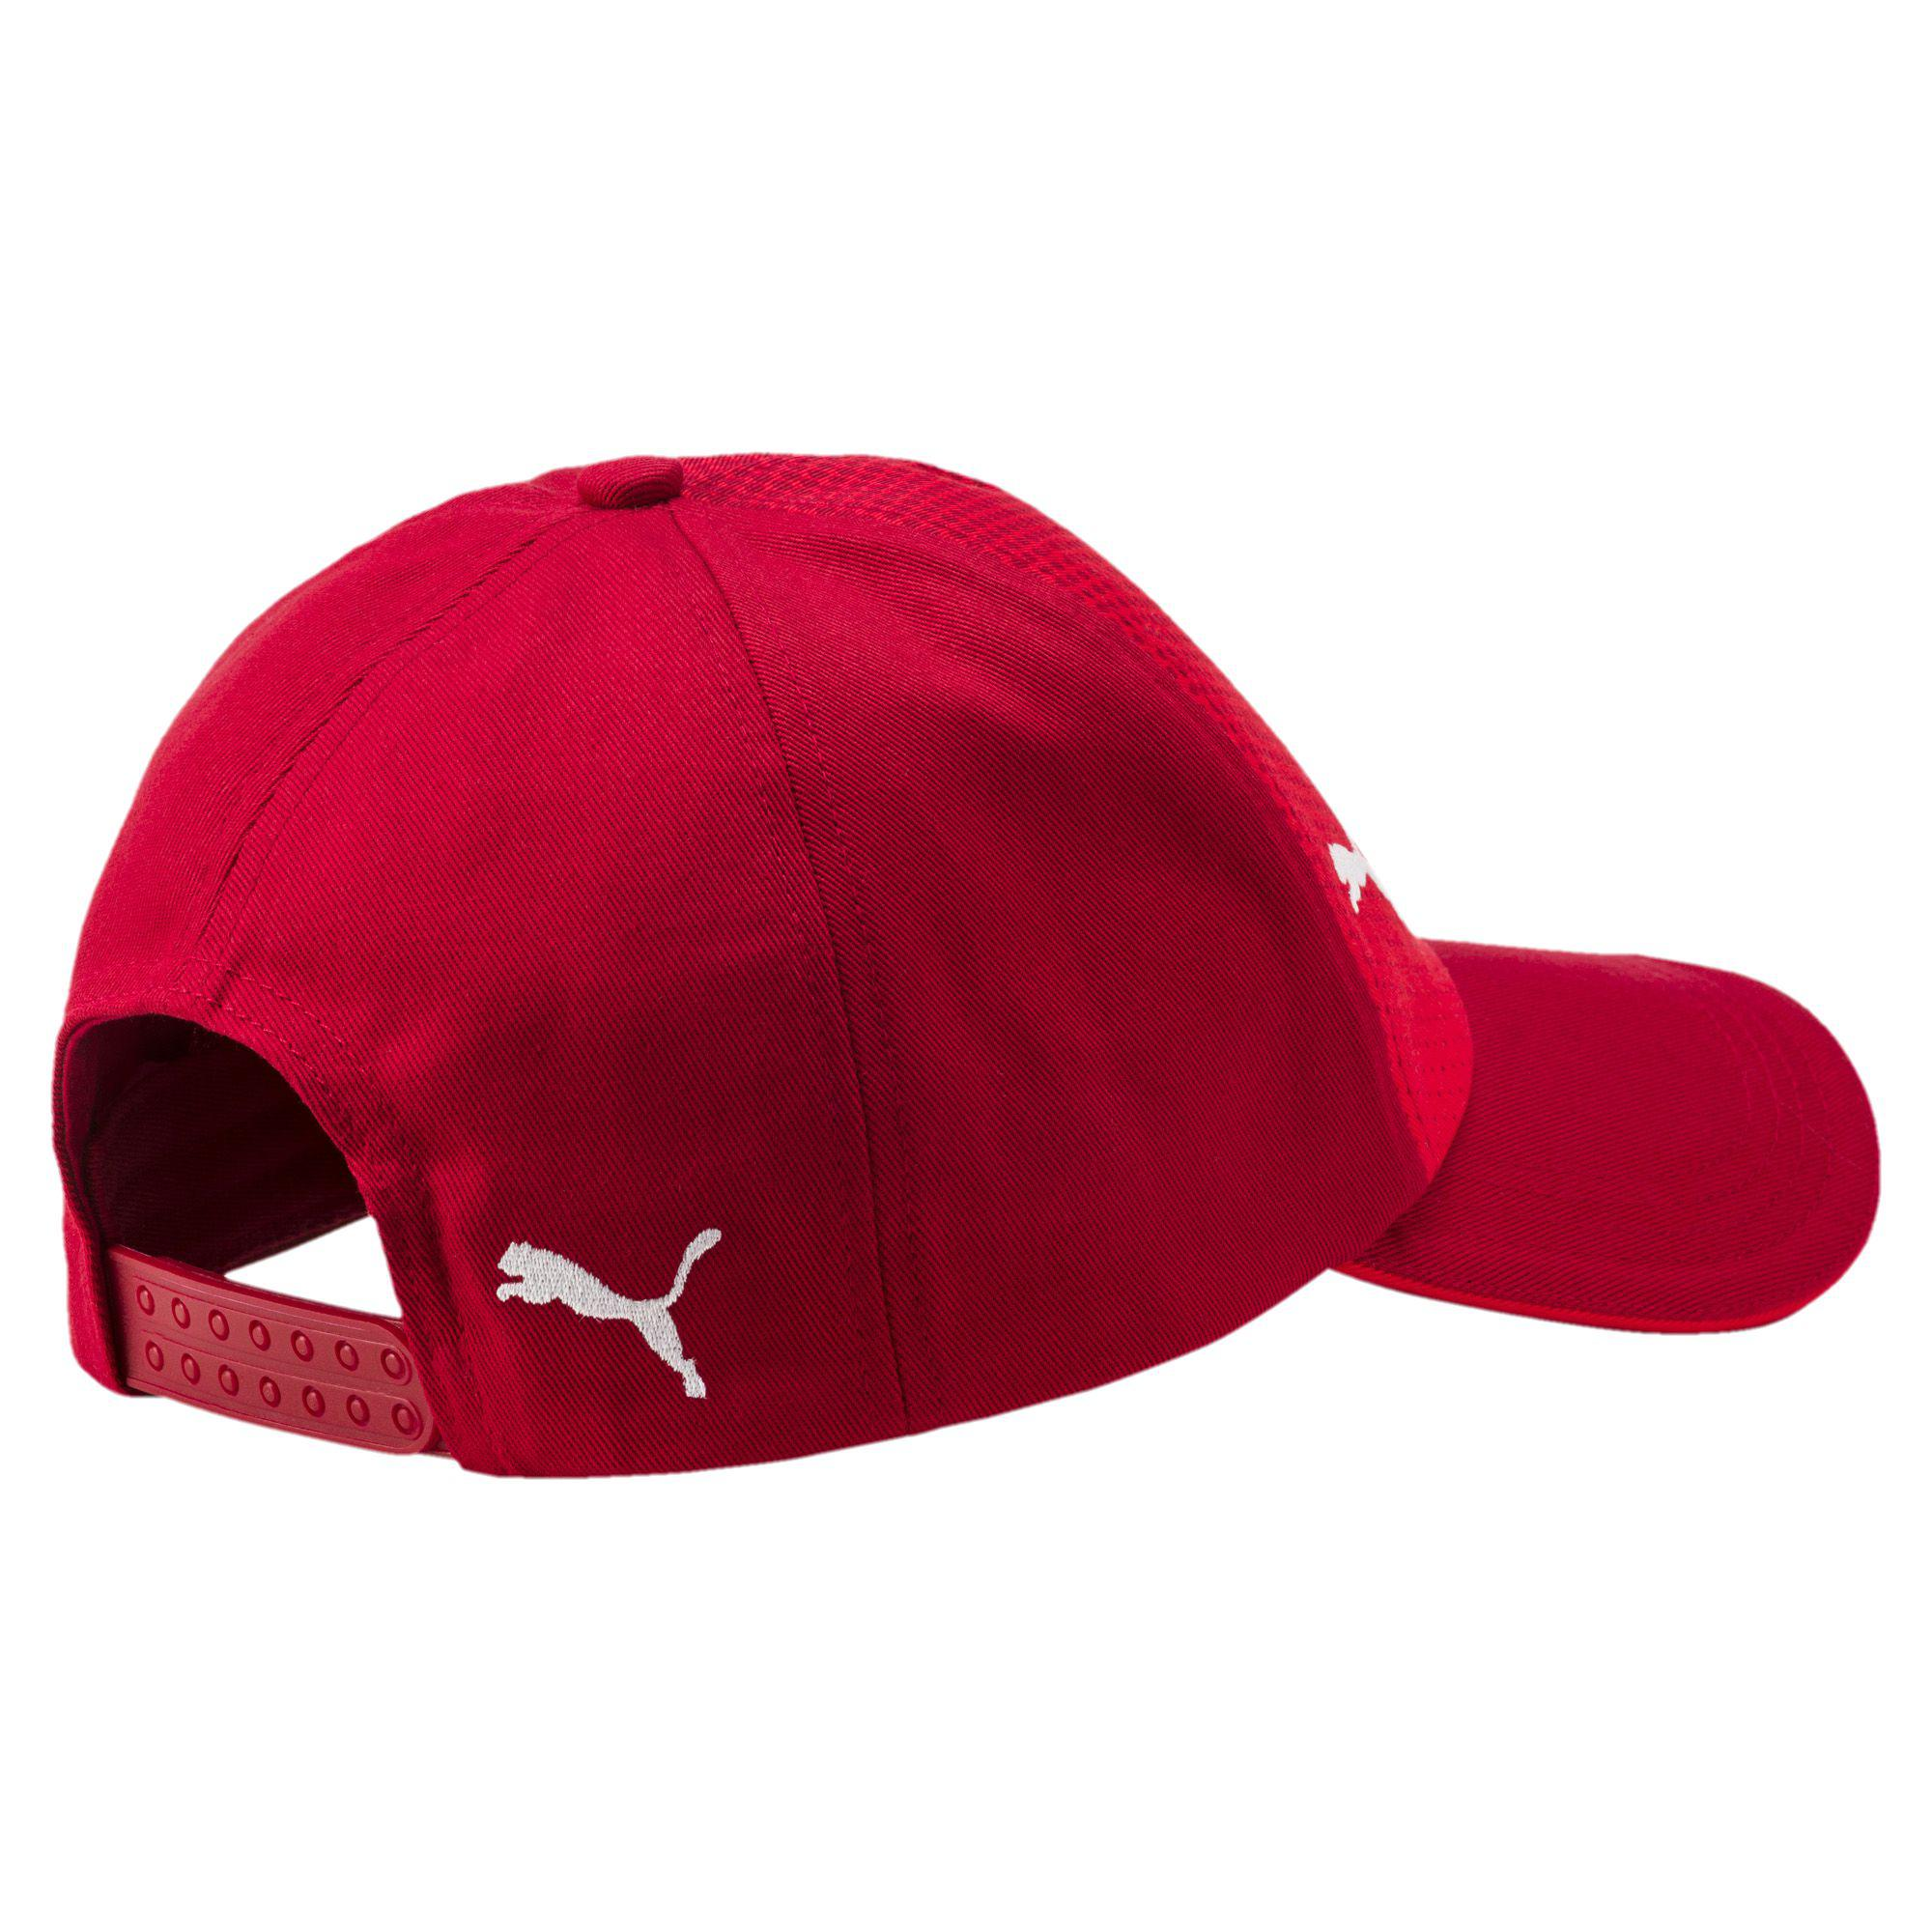 9749a45544c ... discount code for lyst puma arsenal hat in red for men 1bd39 1edcb